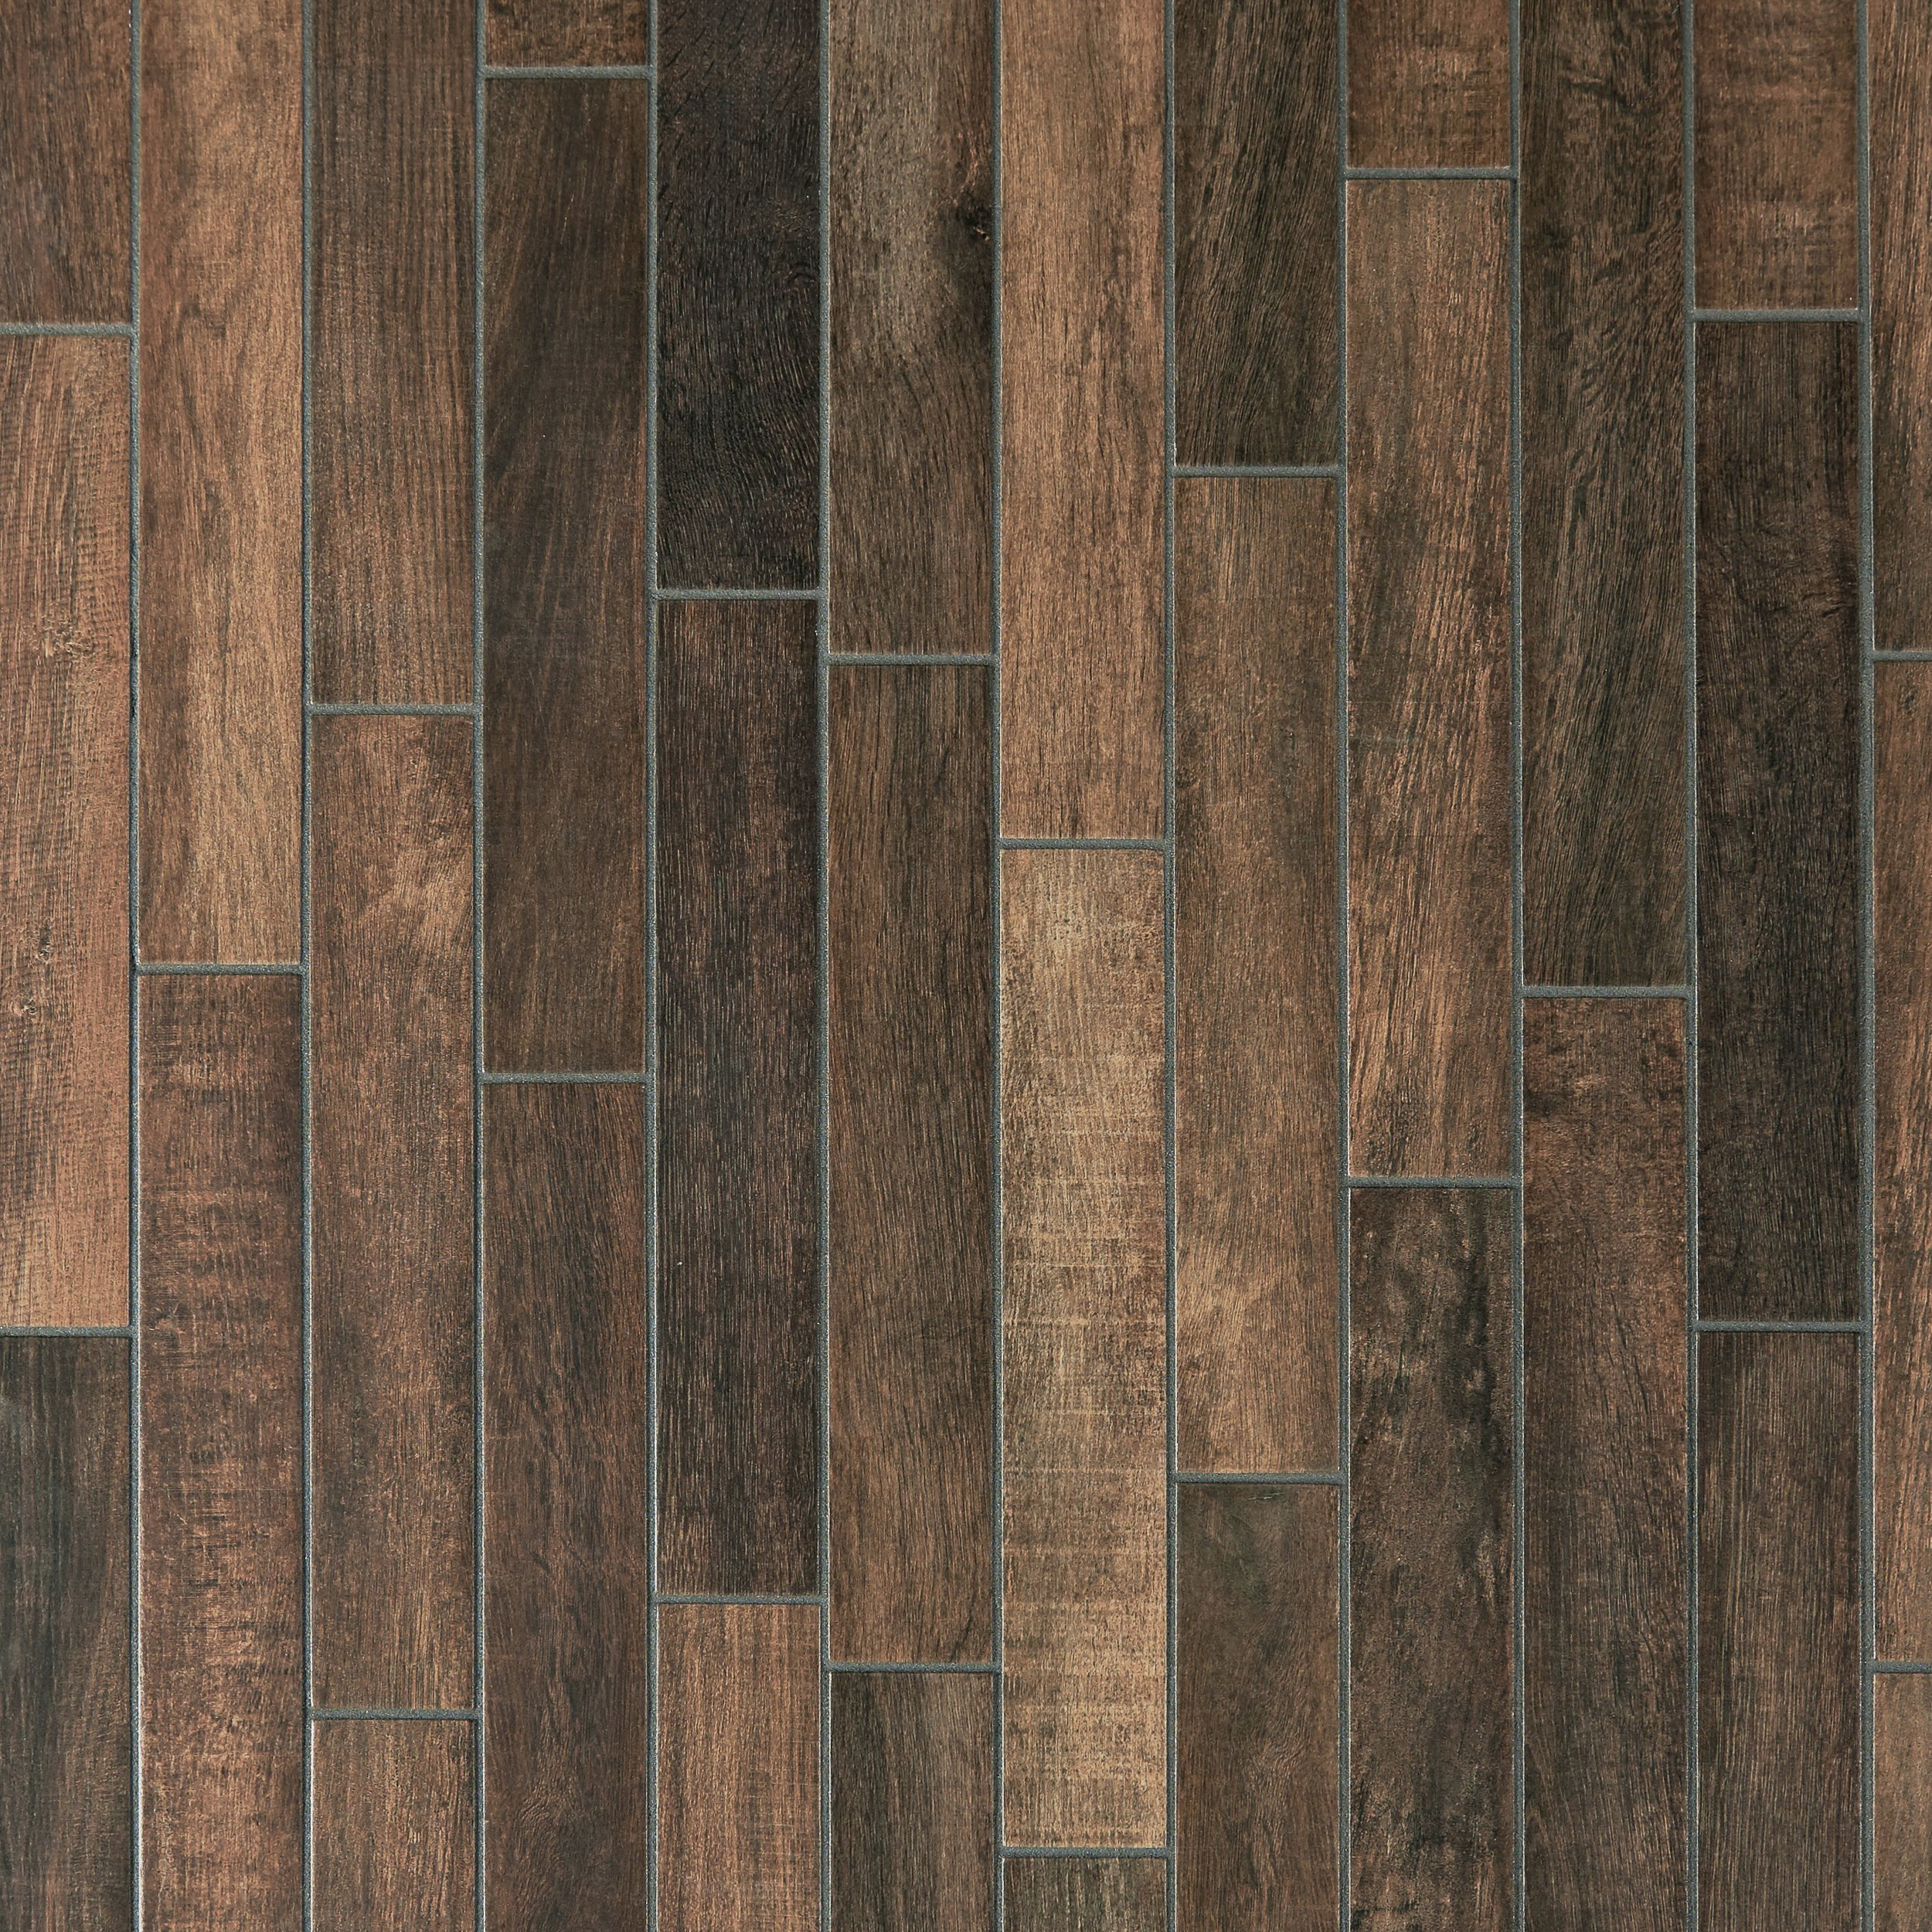 Porcelain Tile Wood Plank: Wood Art Midnight Wood Plank Porcelain Tile